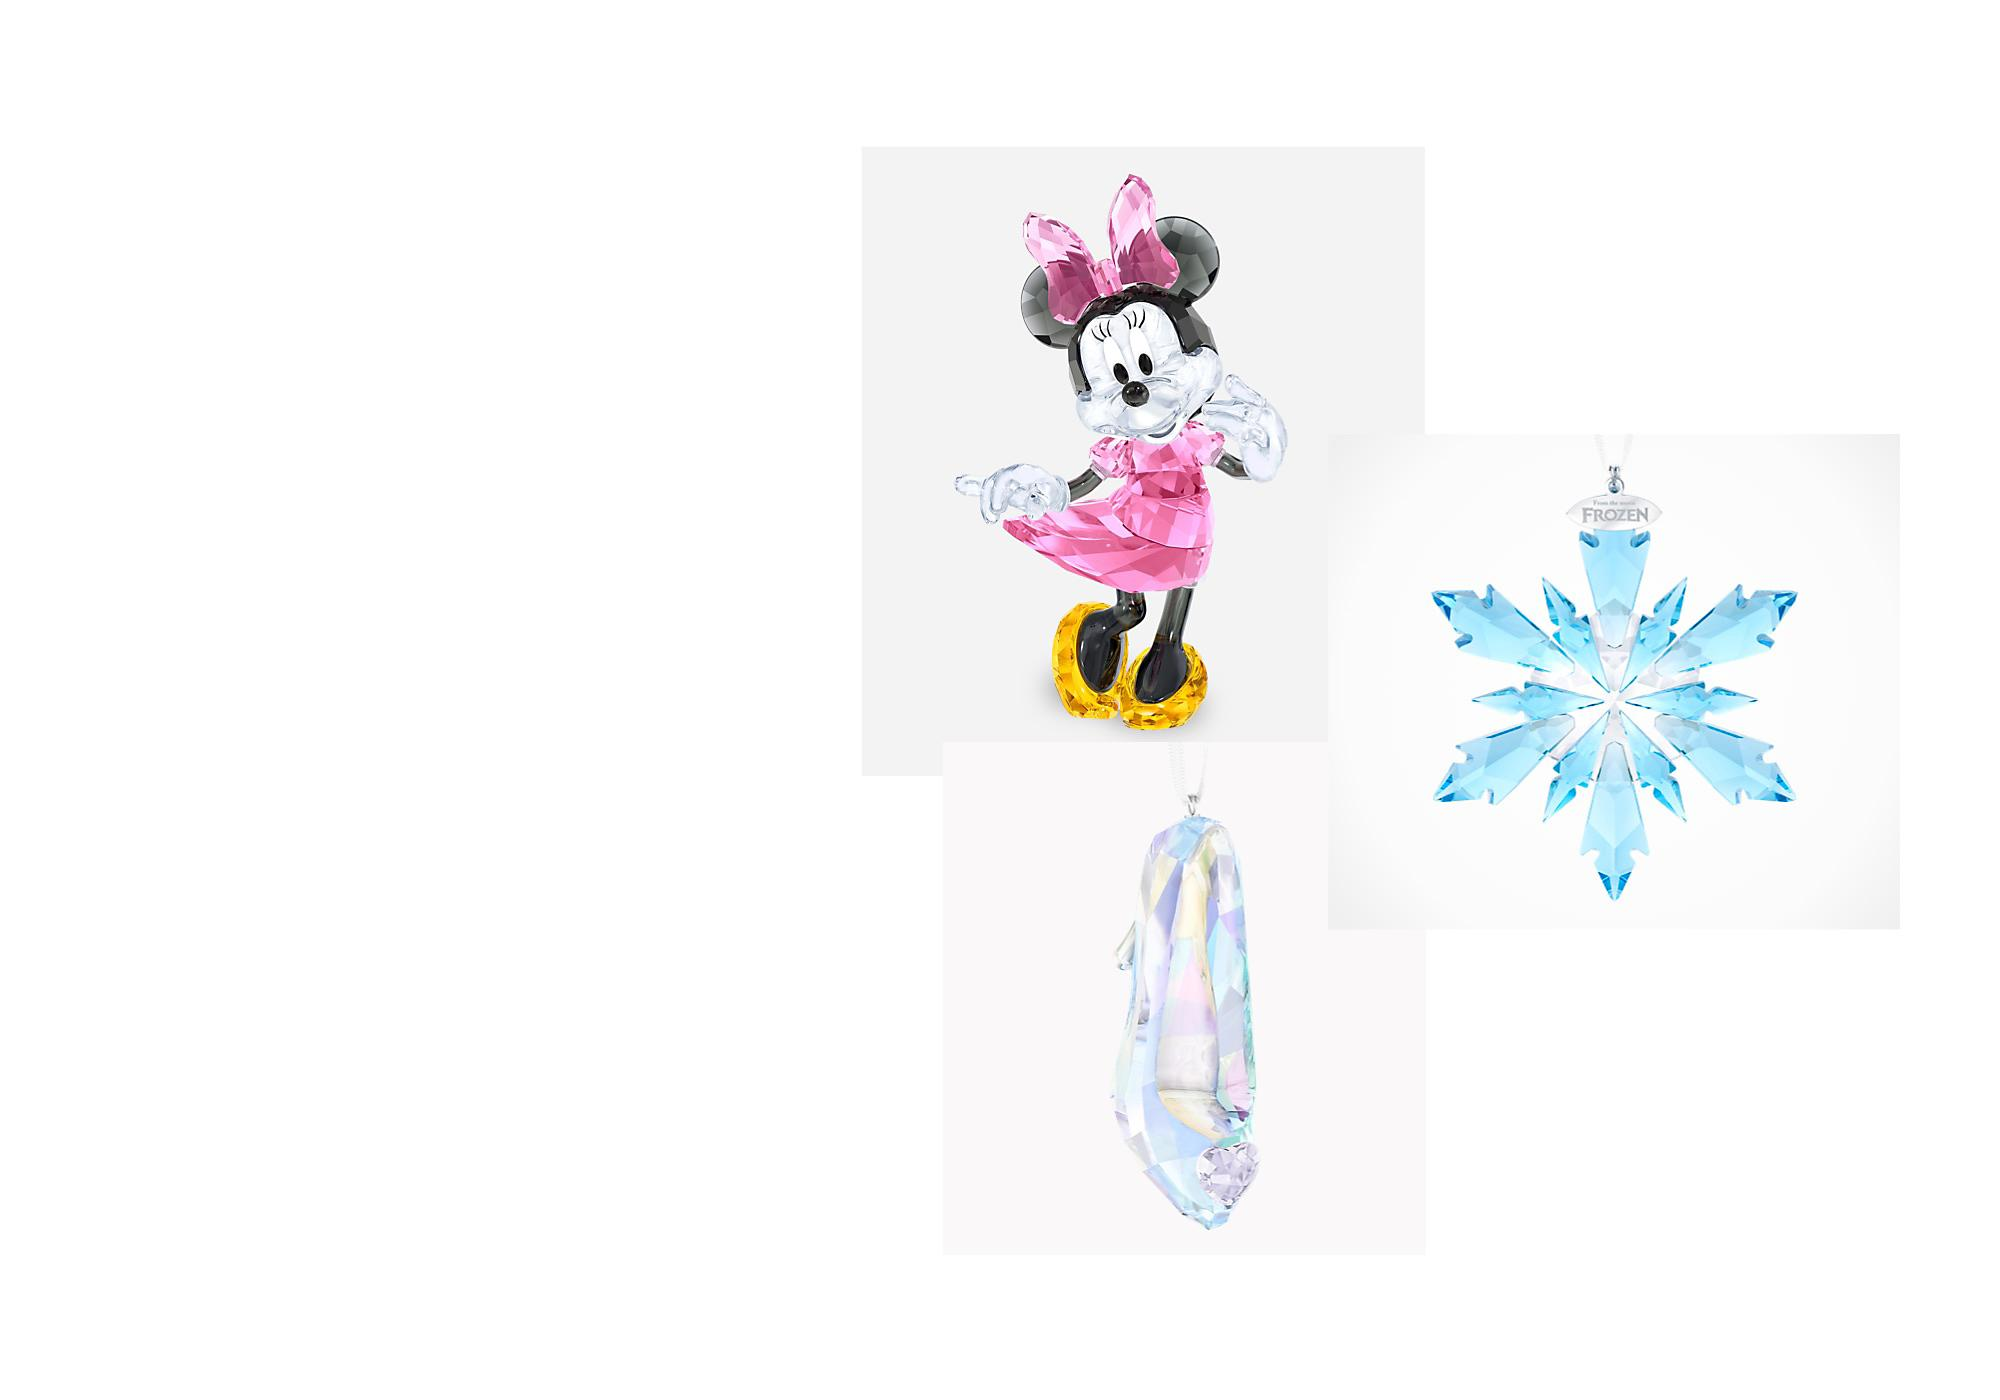 Crystal Creations Beautifully crafted crystal creations inspired by your favourite Disney characters.